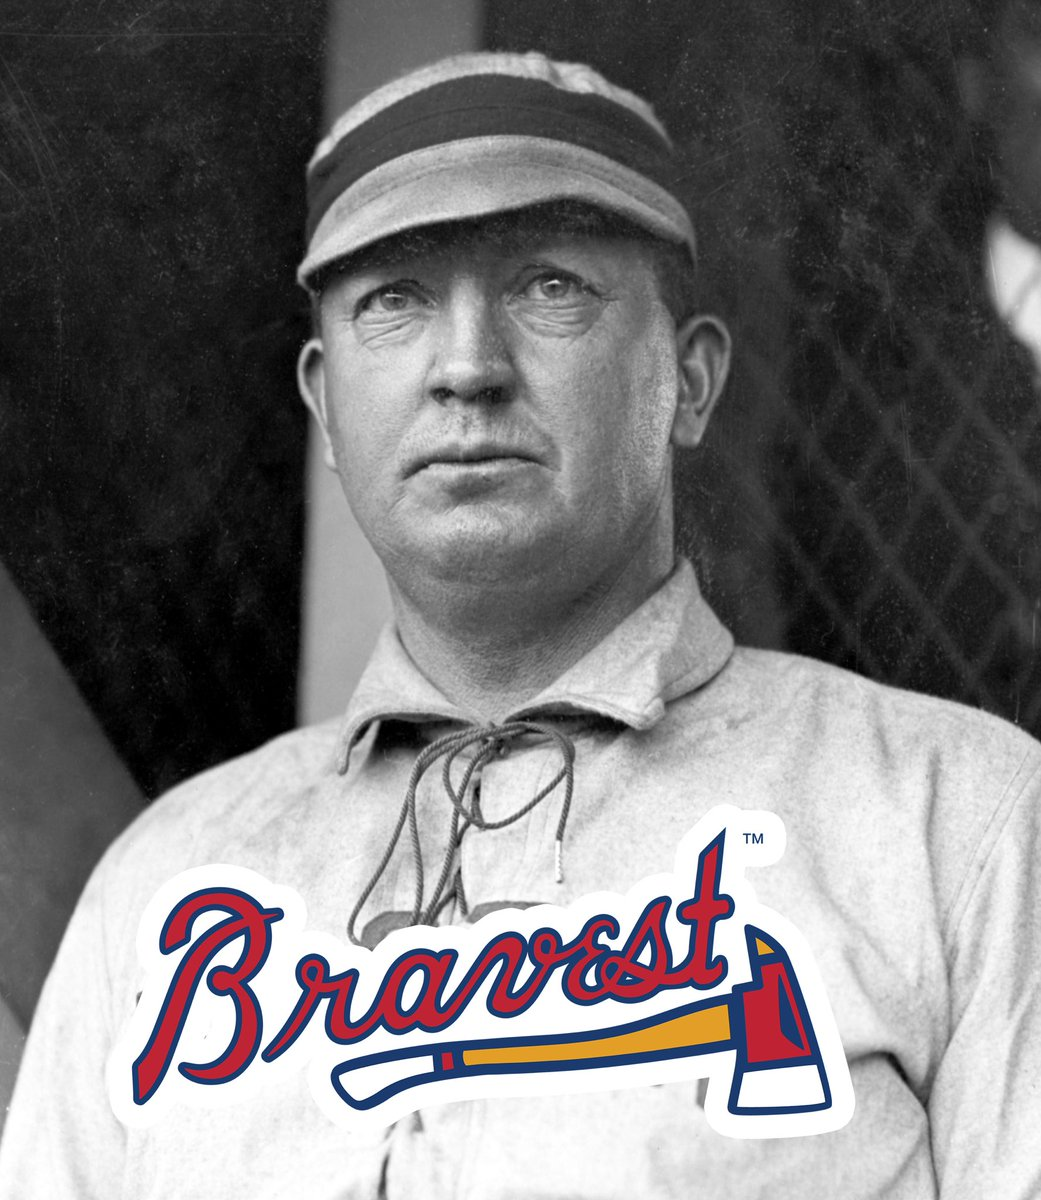 #OTD in 1911, the Boston #Bravest won a slugfest over the Dodgers 13-9. While this good looking chap didn't play that game, he WAS in the process of finishing up his final season of pro baseball. Who knows who he is?  HINT: He's kind of a big deal to pitchers.  #bravestatl https://t.co/PKunFwEZ7g